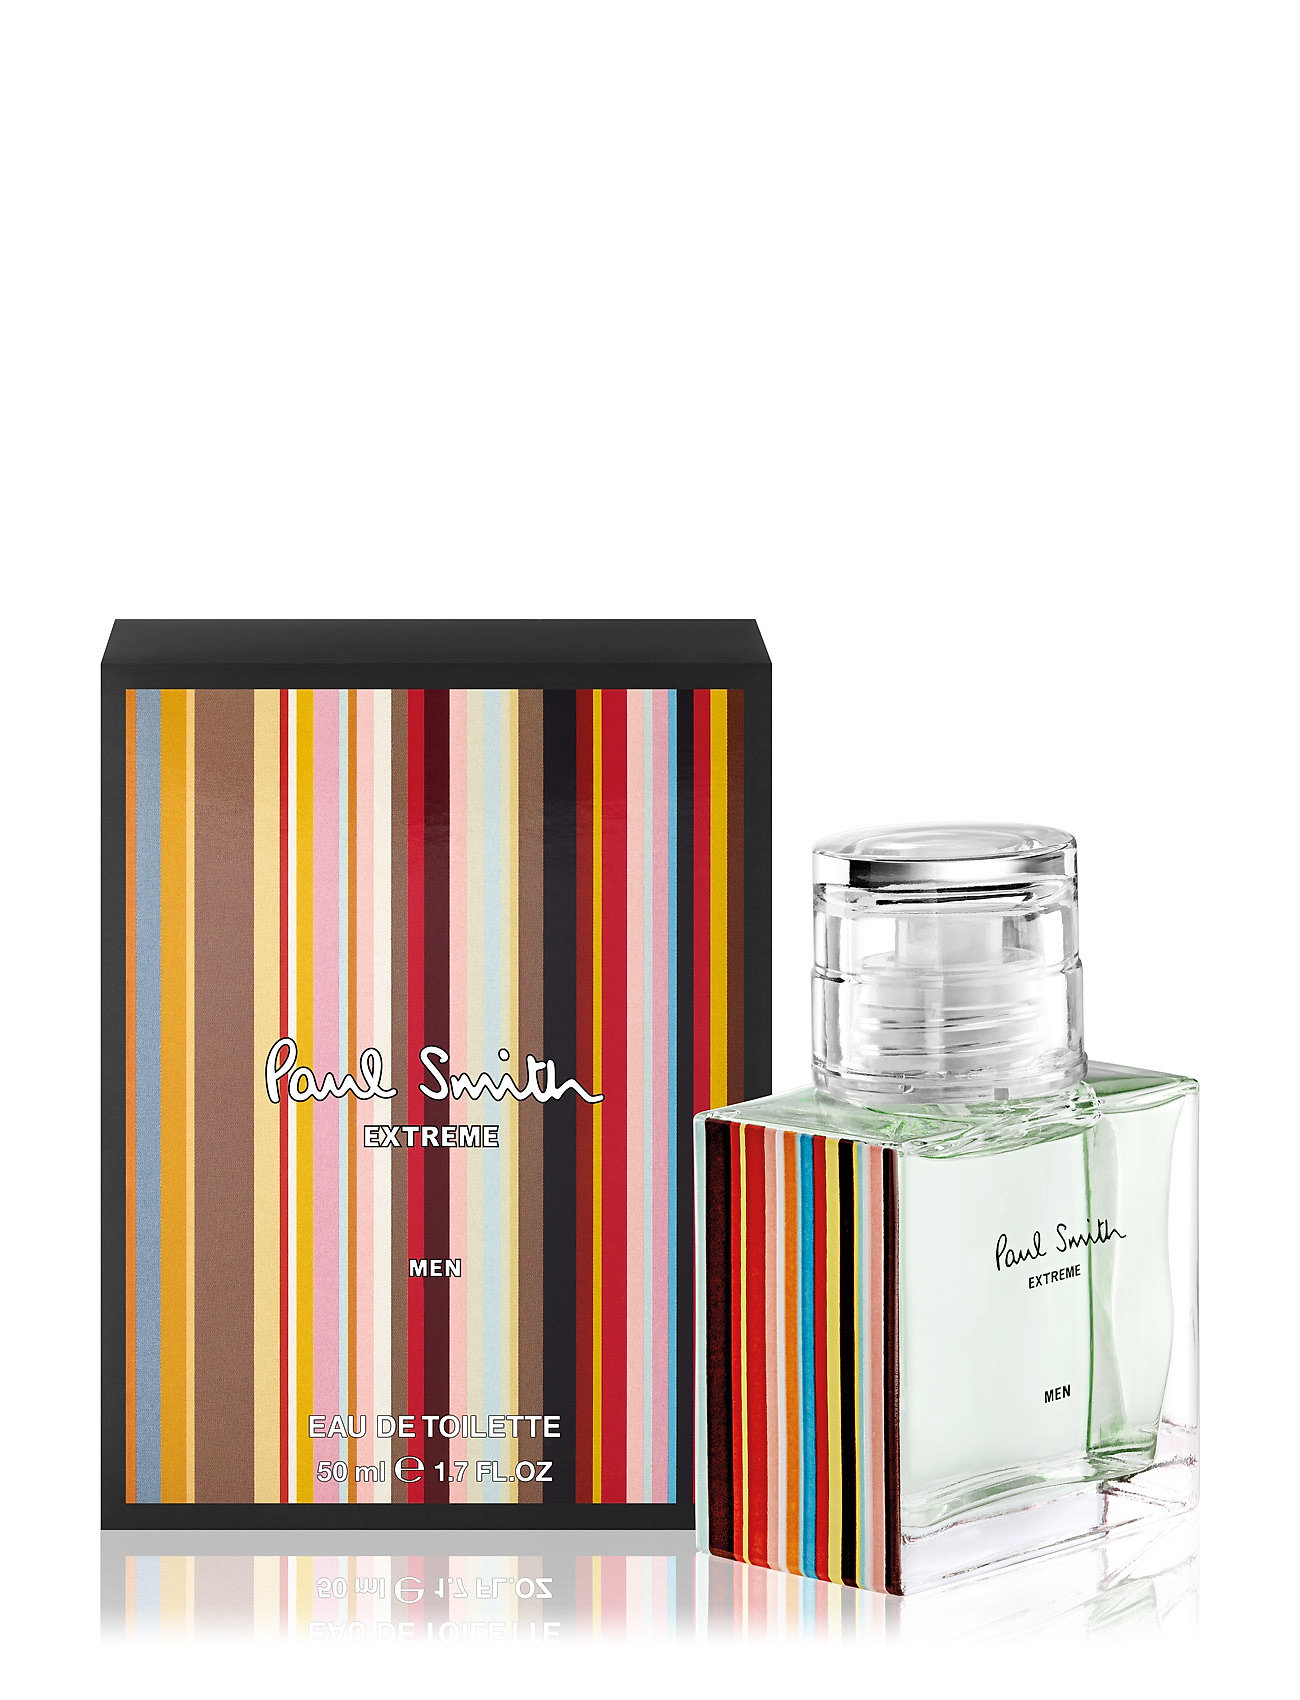 paul smith – Extreme man eau de toilette på boozt.com dk